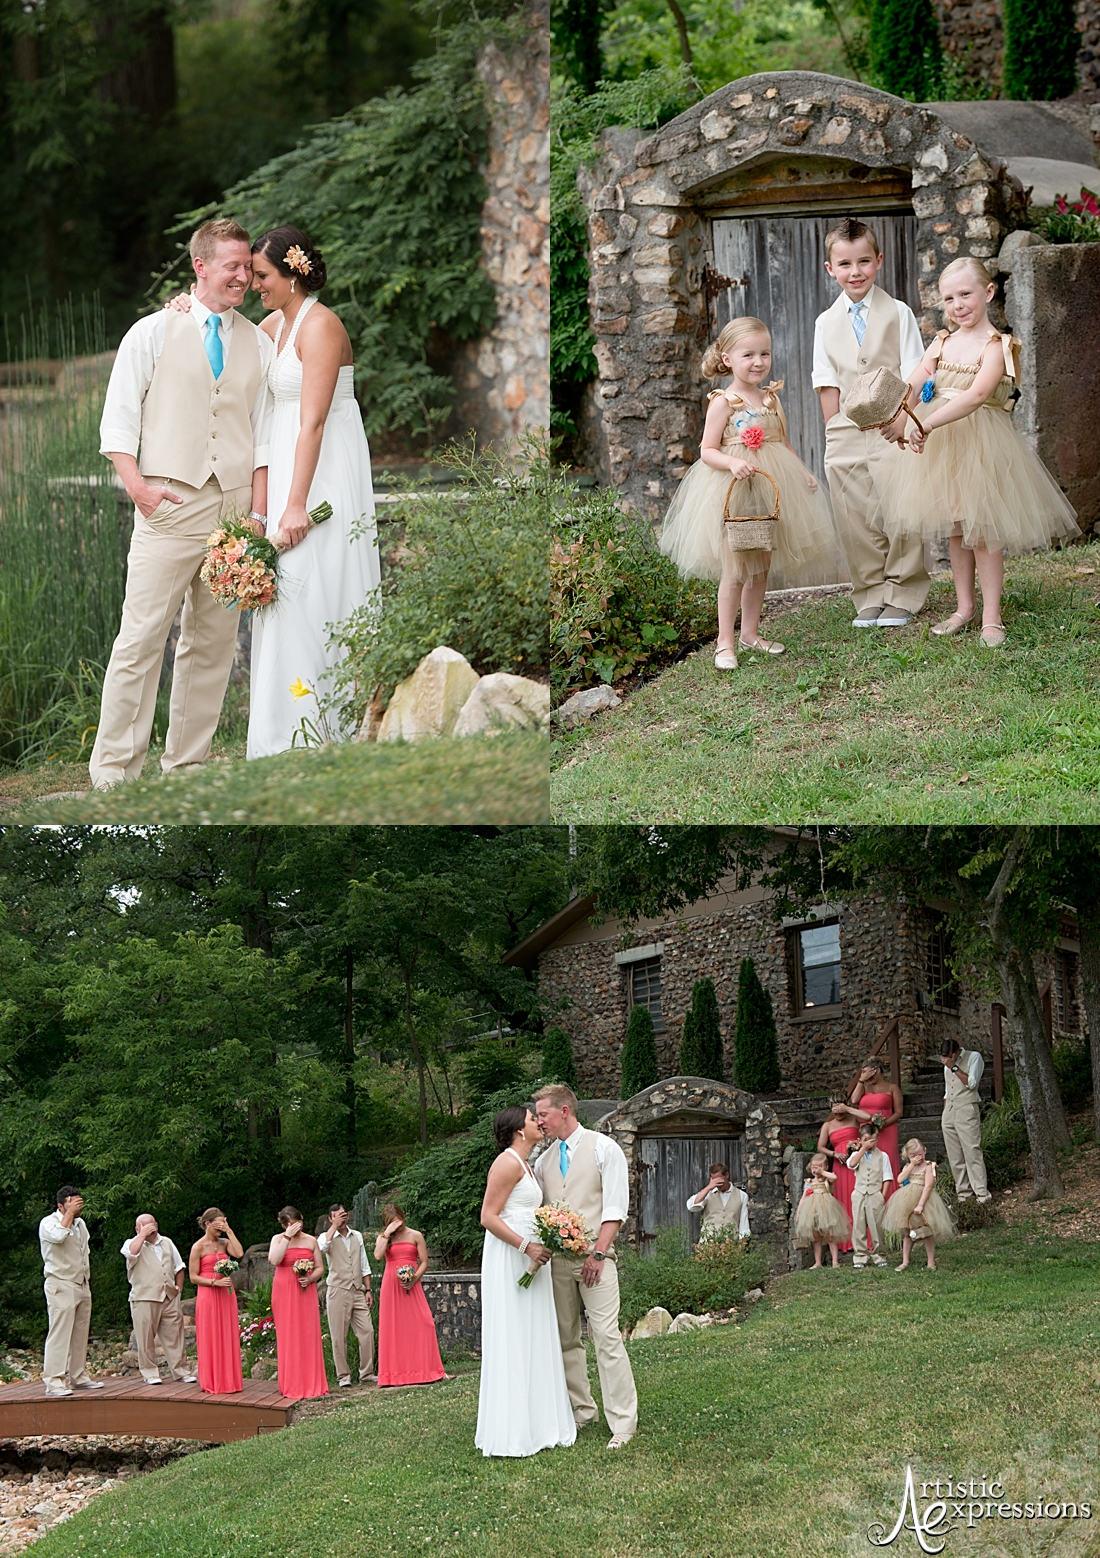 Sarah And Justin Are Married Springhouse Gardens Wedding Venue Joplin Mo Joplin Expressions